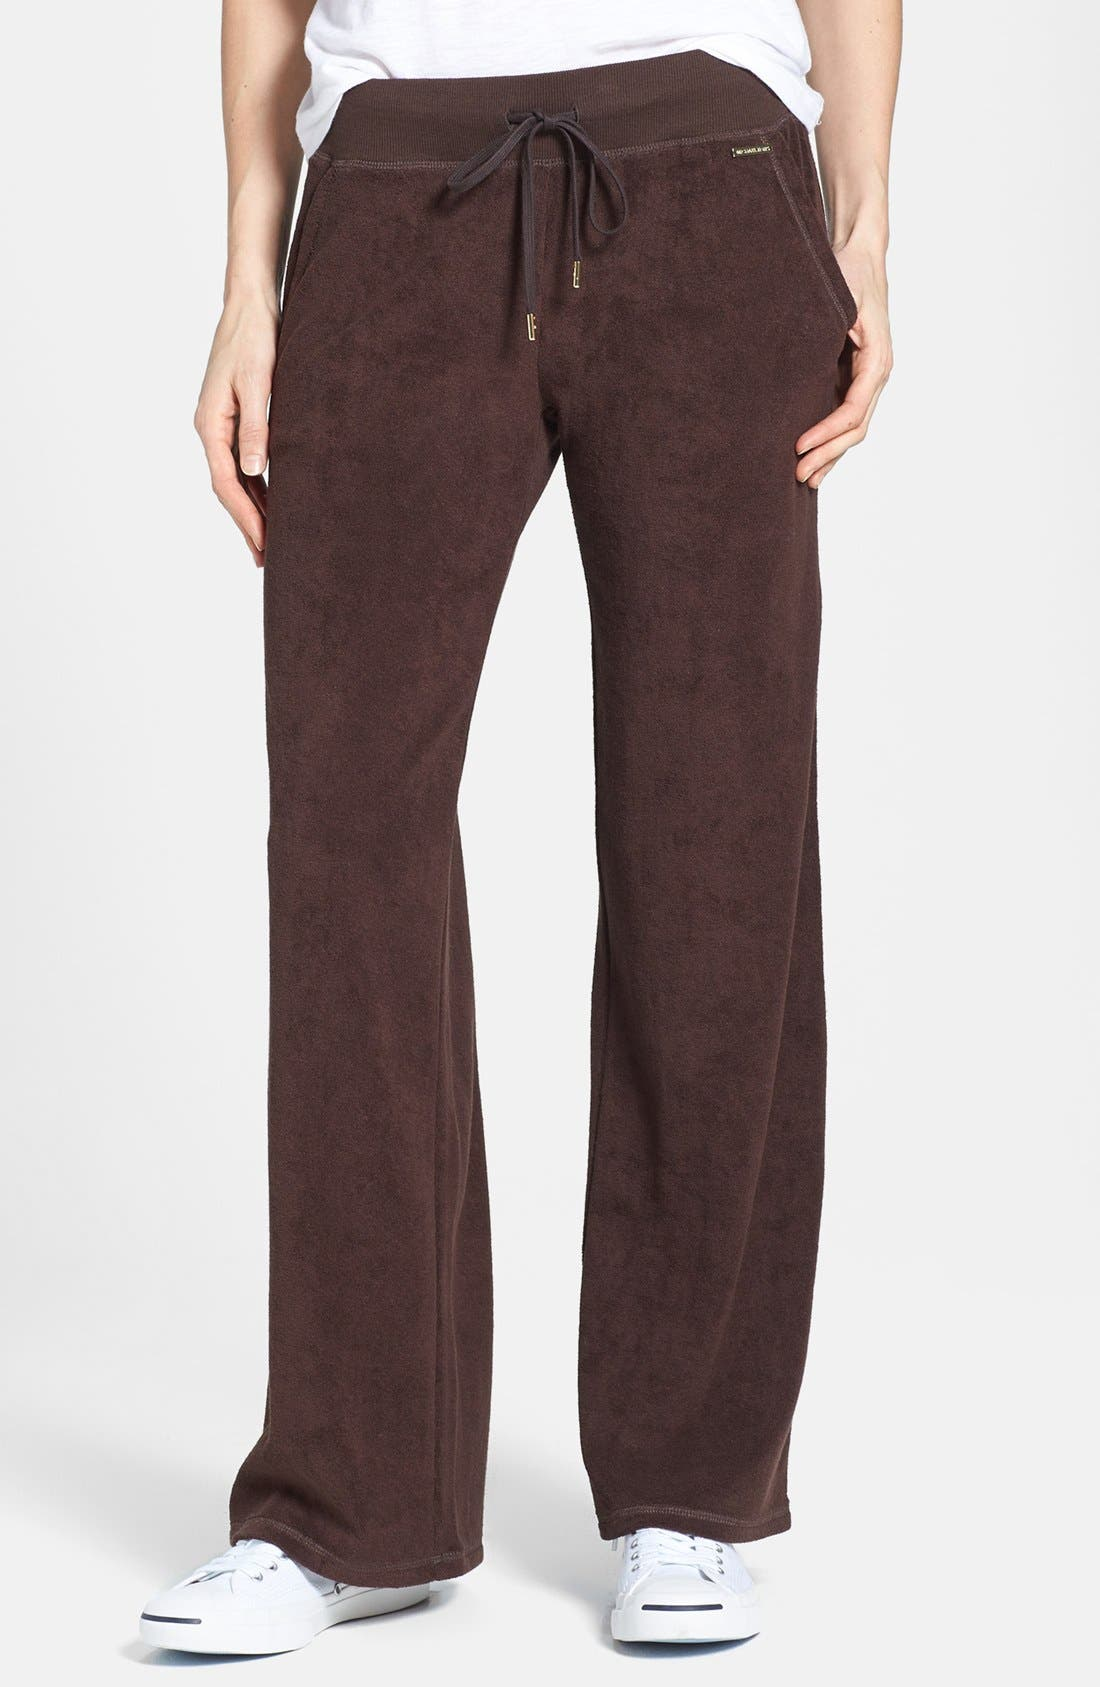 Alternate Image 1 Selected - MICHAEL Michael Kors Drawstring Waist French Terry Pants